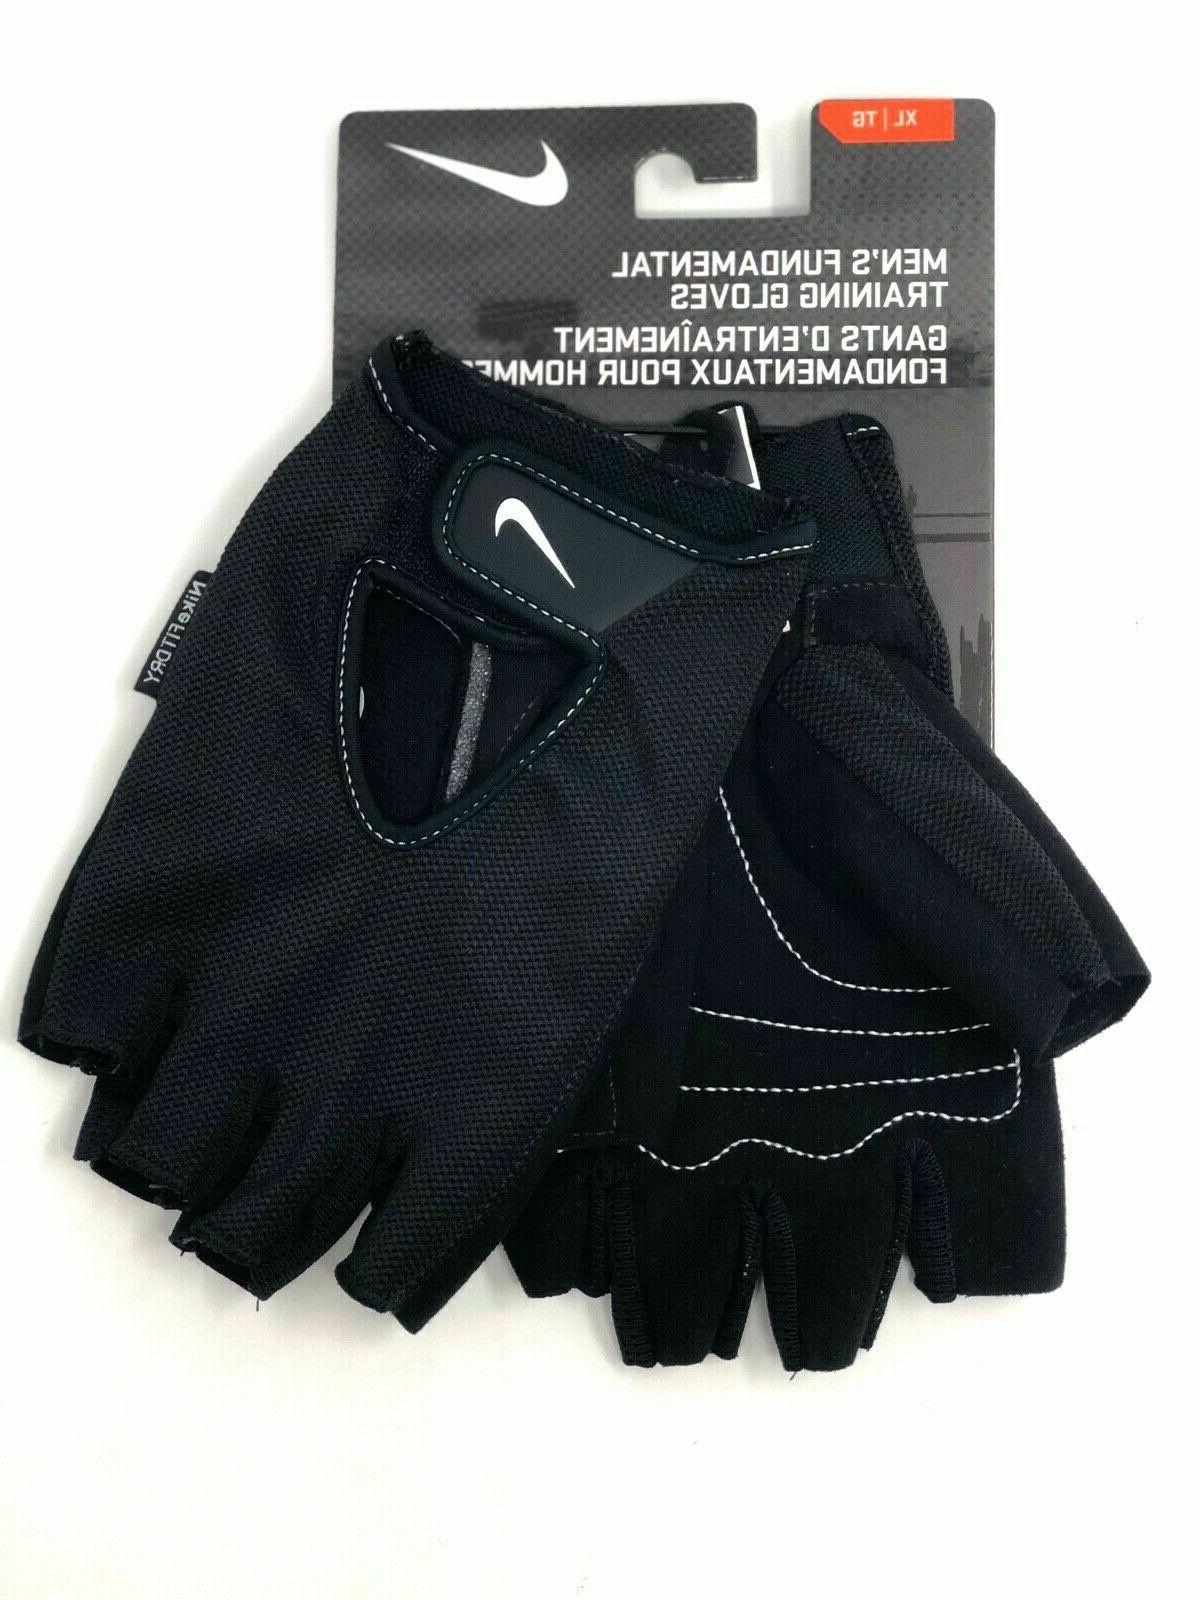 Sporting Goods Clothing Shoes Accessories Nike Lunatic Training Gloves Black Anthracite Volt Men S Large Sporting Goods Clothing Shoes Accessories